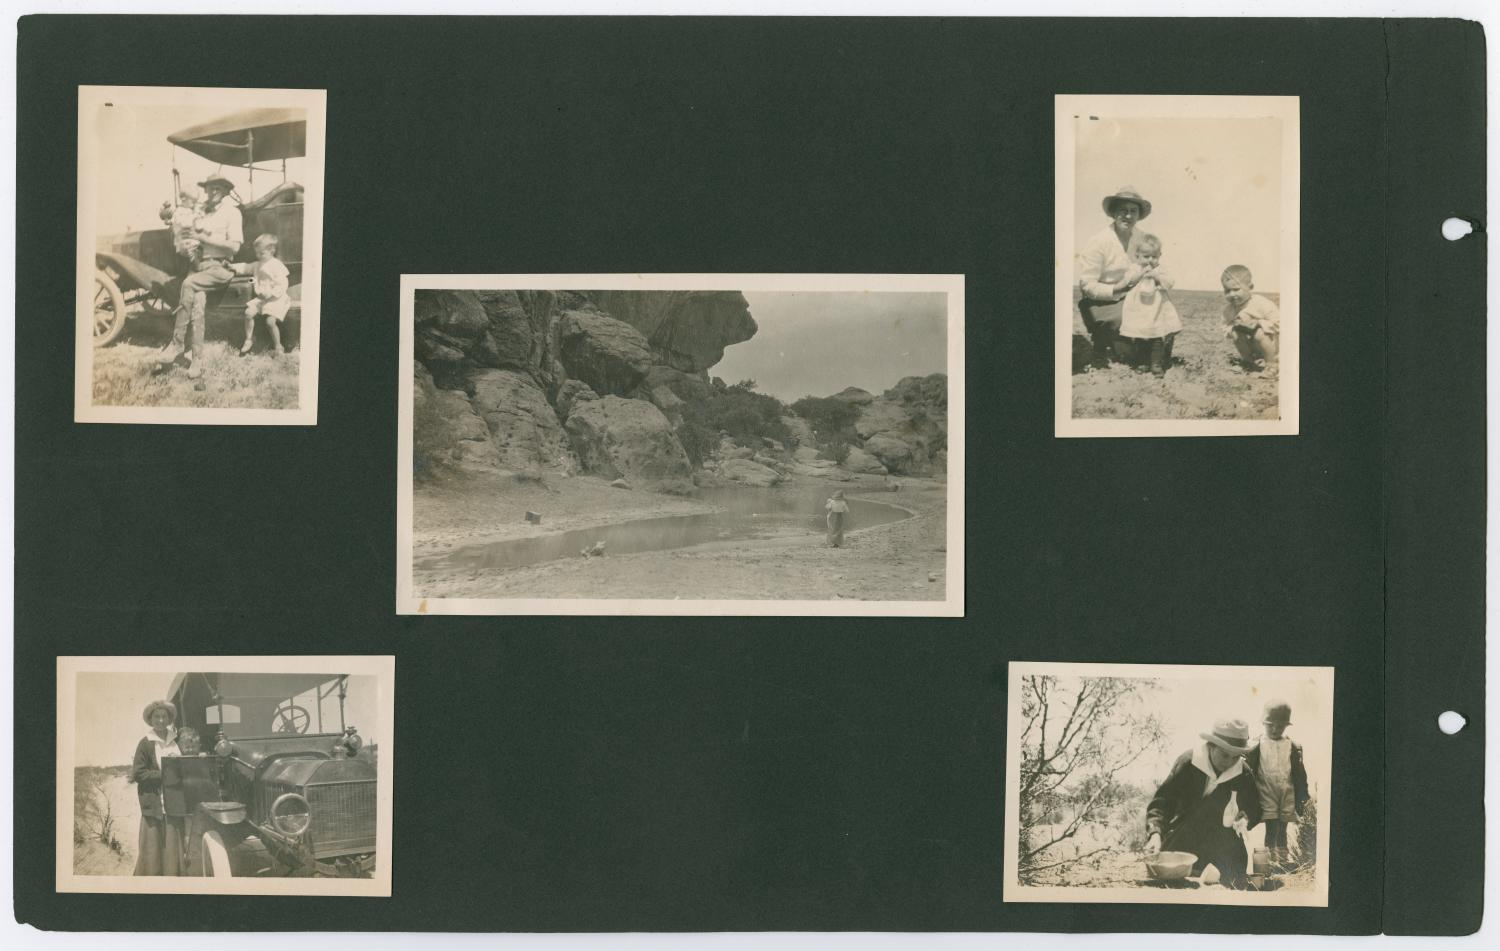 [Page 6 of Byrd Williams Jr. album, 1907-1920], Scrapbook page featuring 5 photos of Byrd Williams Jr. and Irene Biffle Williams, with sons Byrd III and John, cooking outdoors, sitting on their Ford, and walking along a stream.,